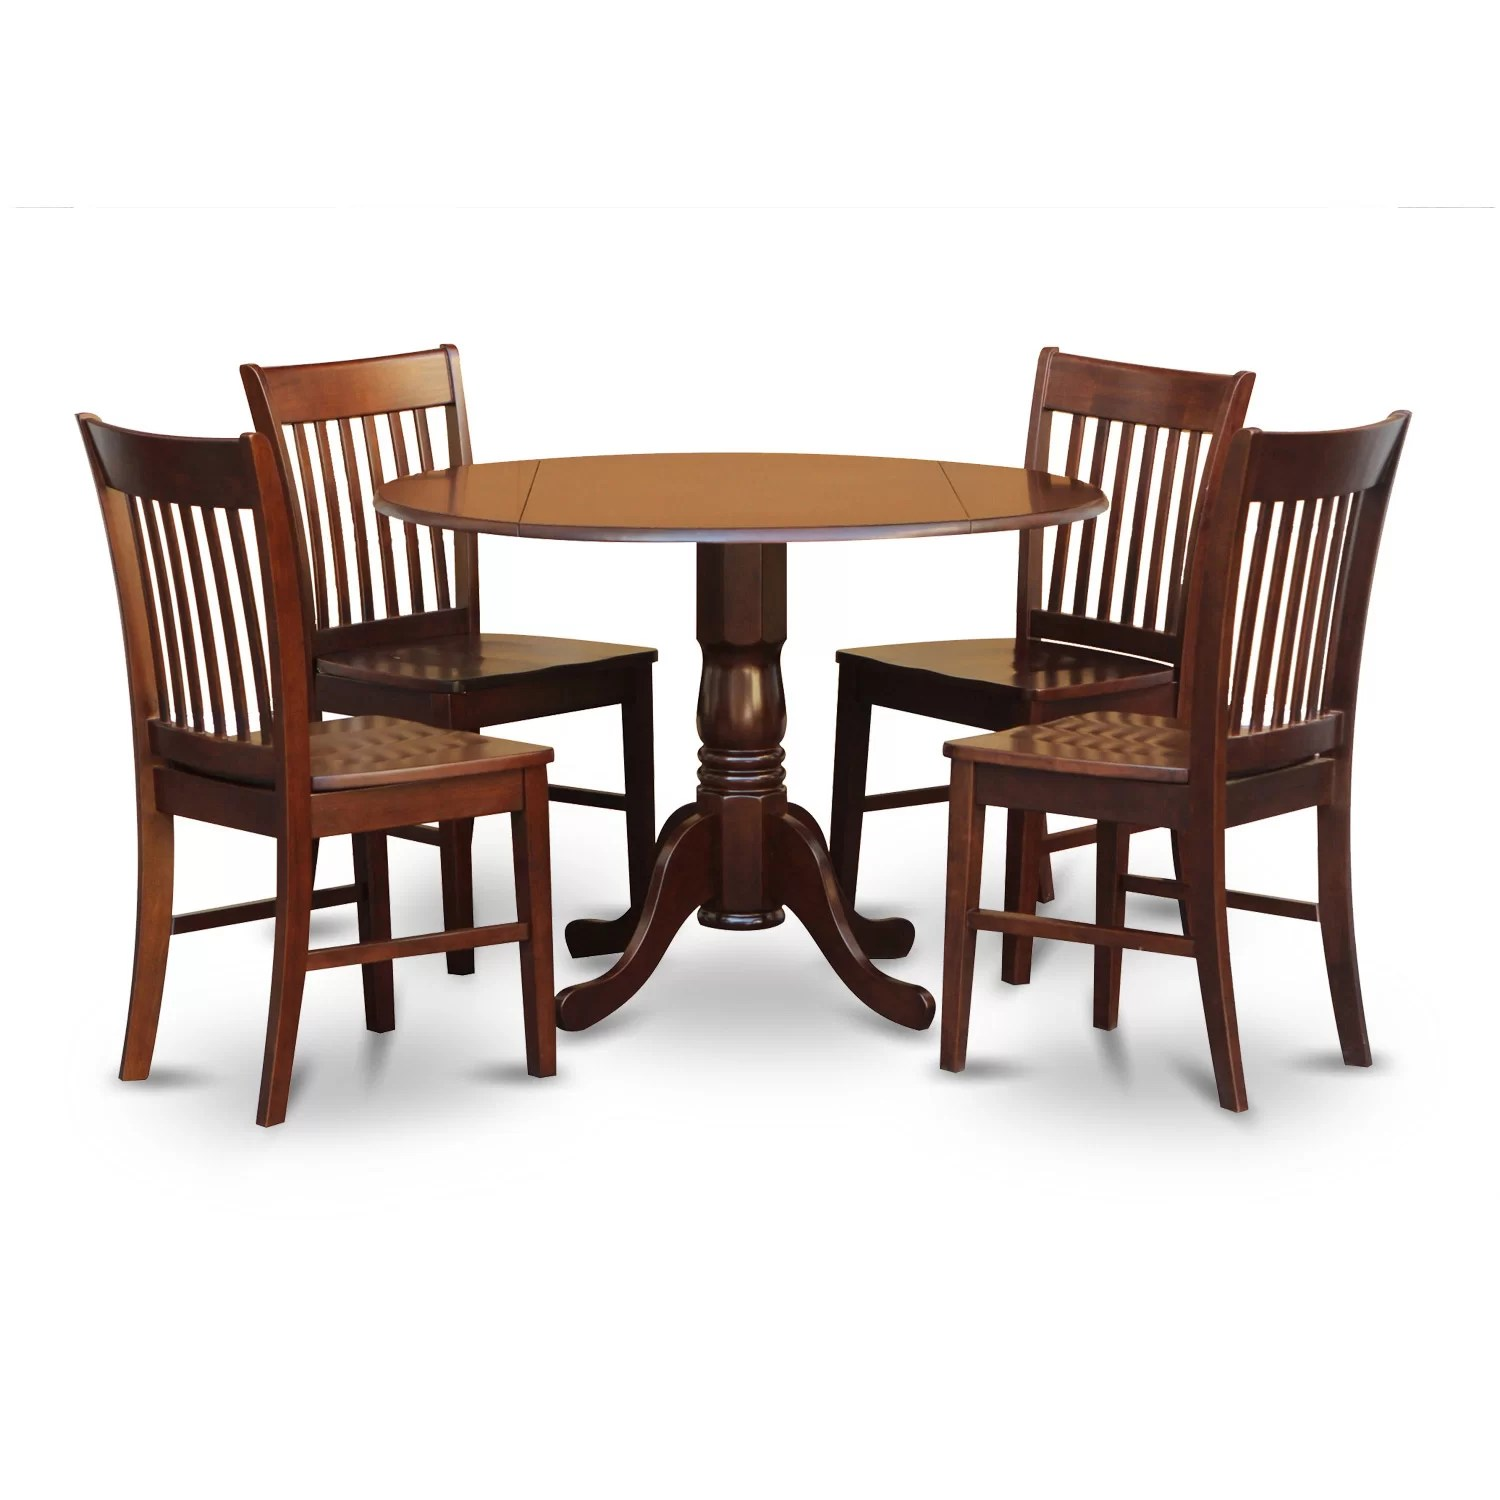 Wayfair Dining Chairs East West Dublin 5 Piece Dining Set And Reviews Wayfair